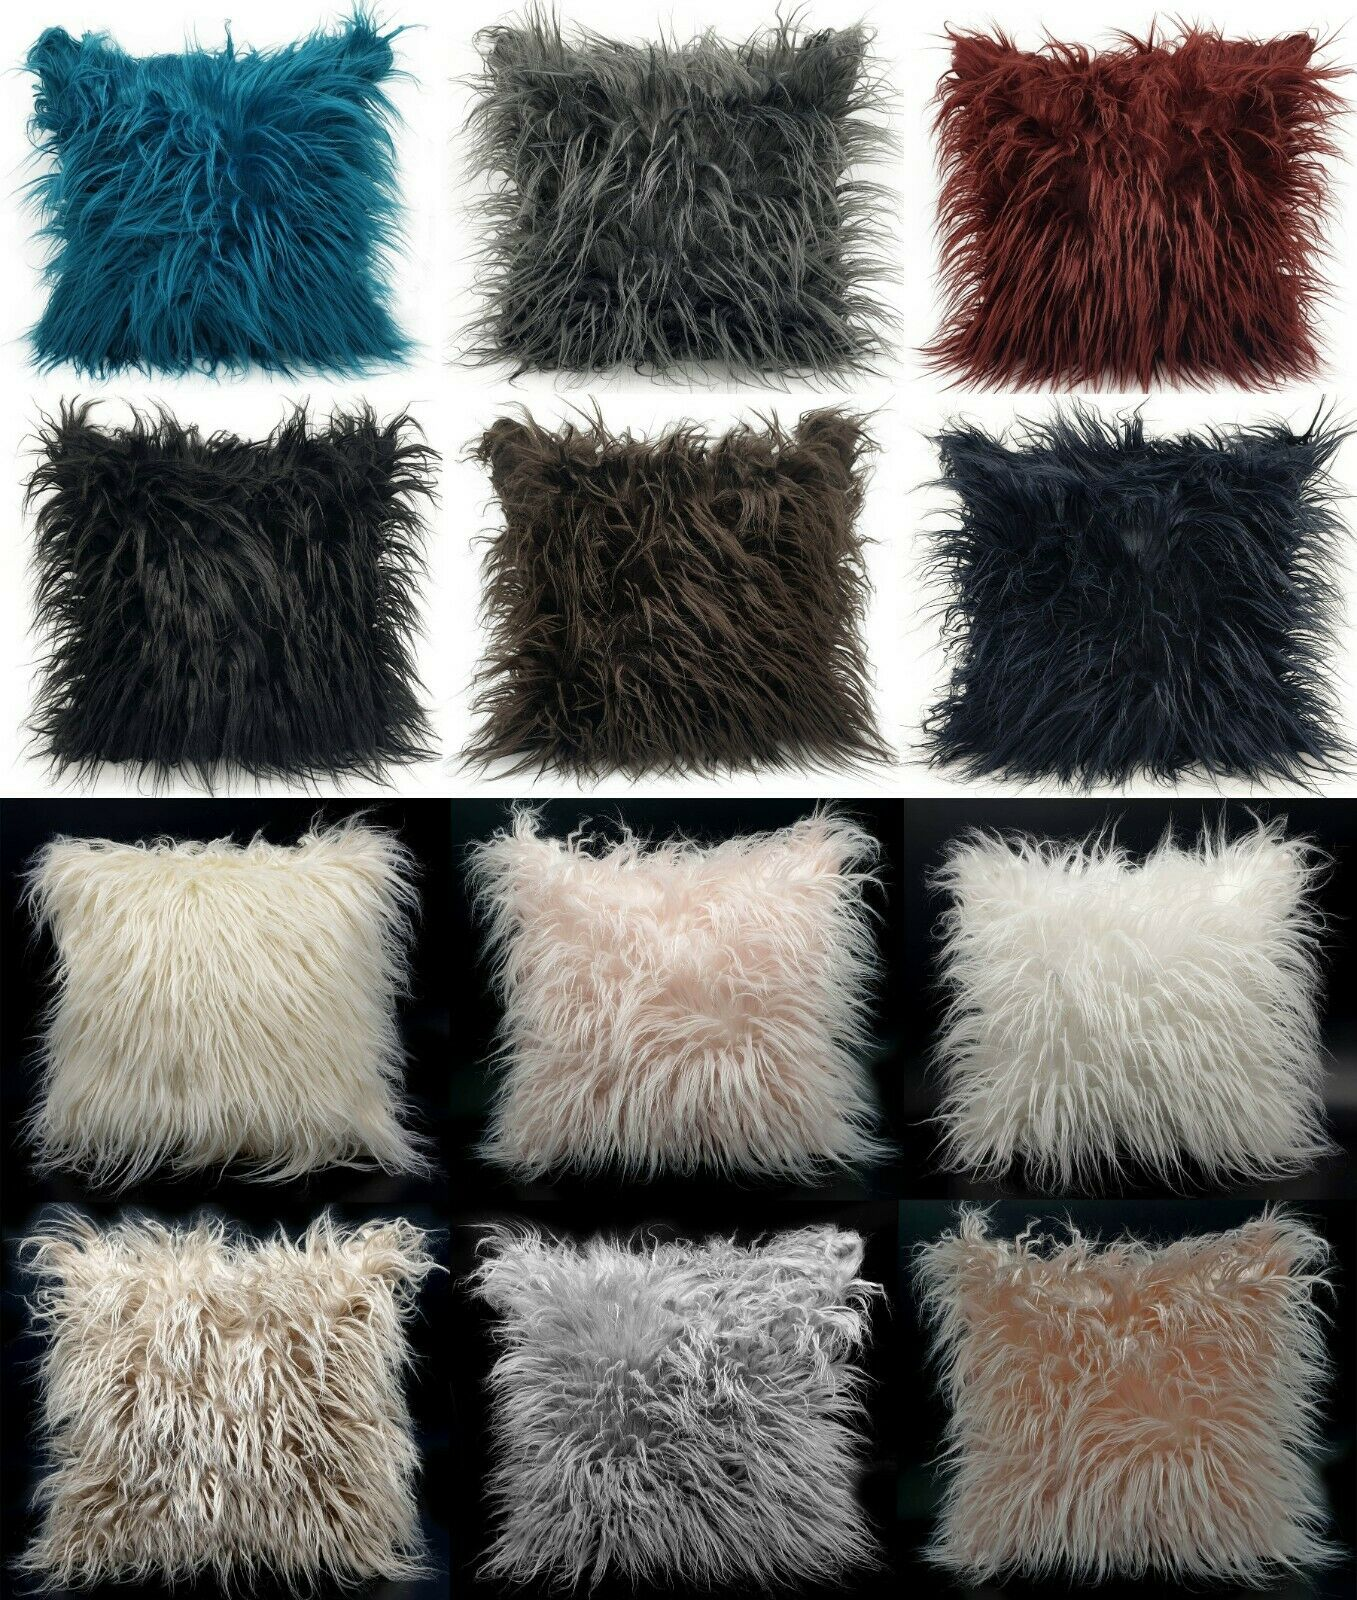 Find great deals on eBay for large faux fur pillows. Shop with confidence.